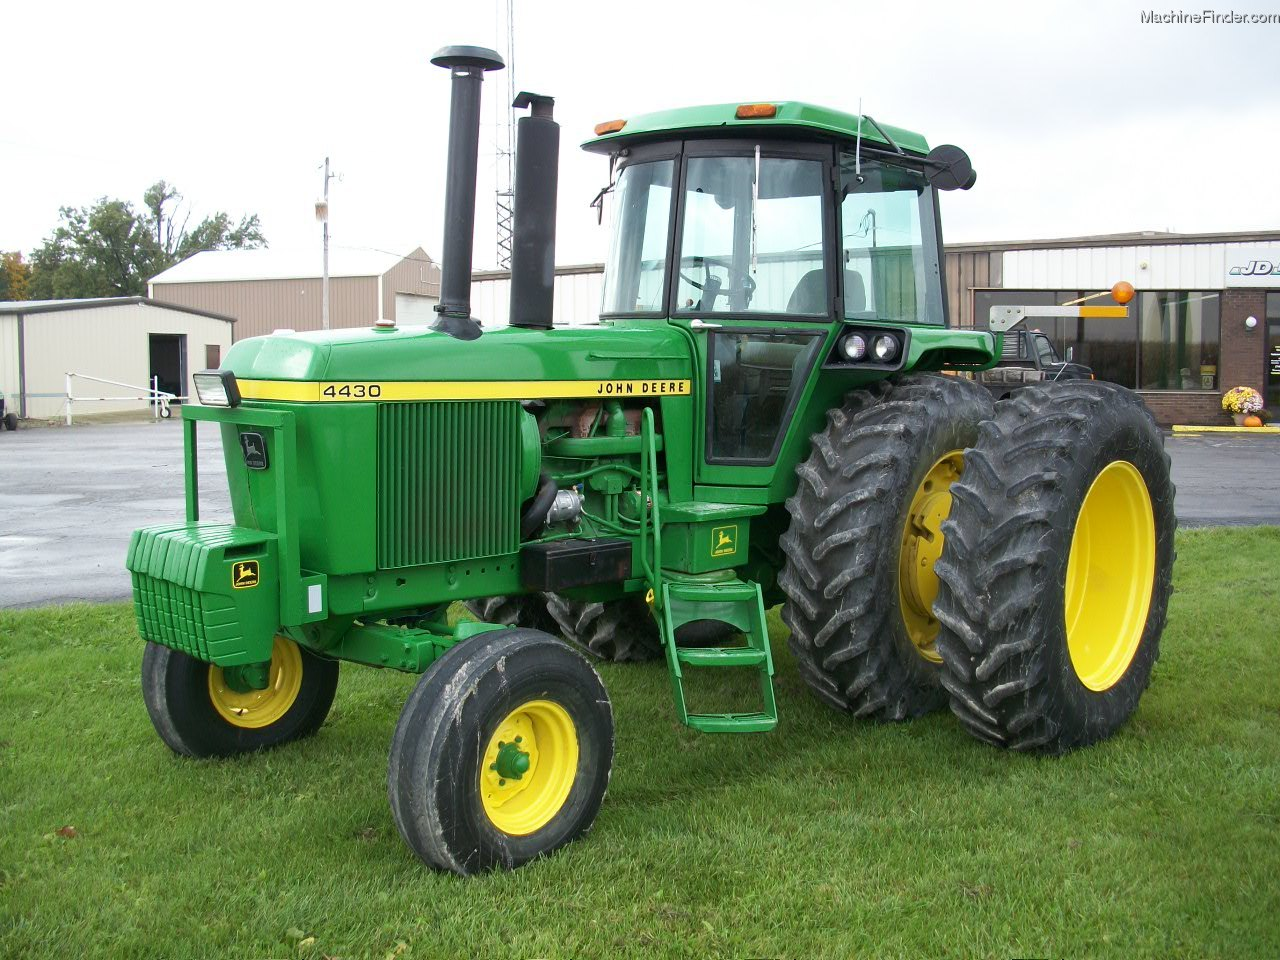 Front Duals For Tractors : John deere tractors row crop hp